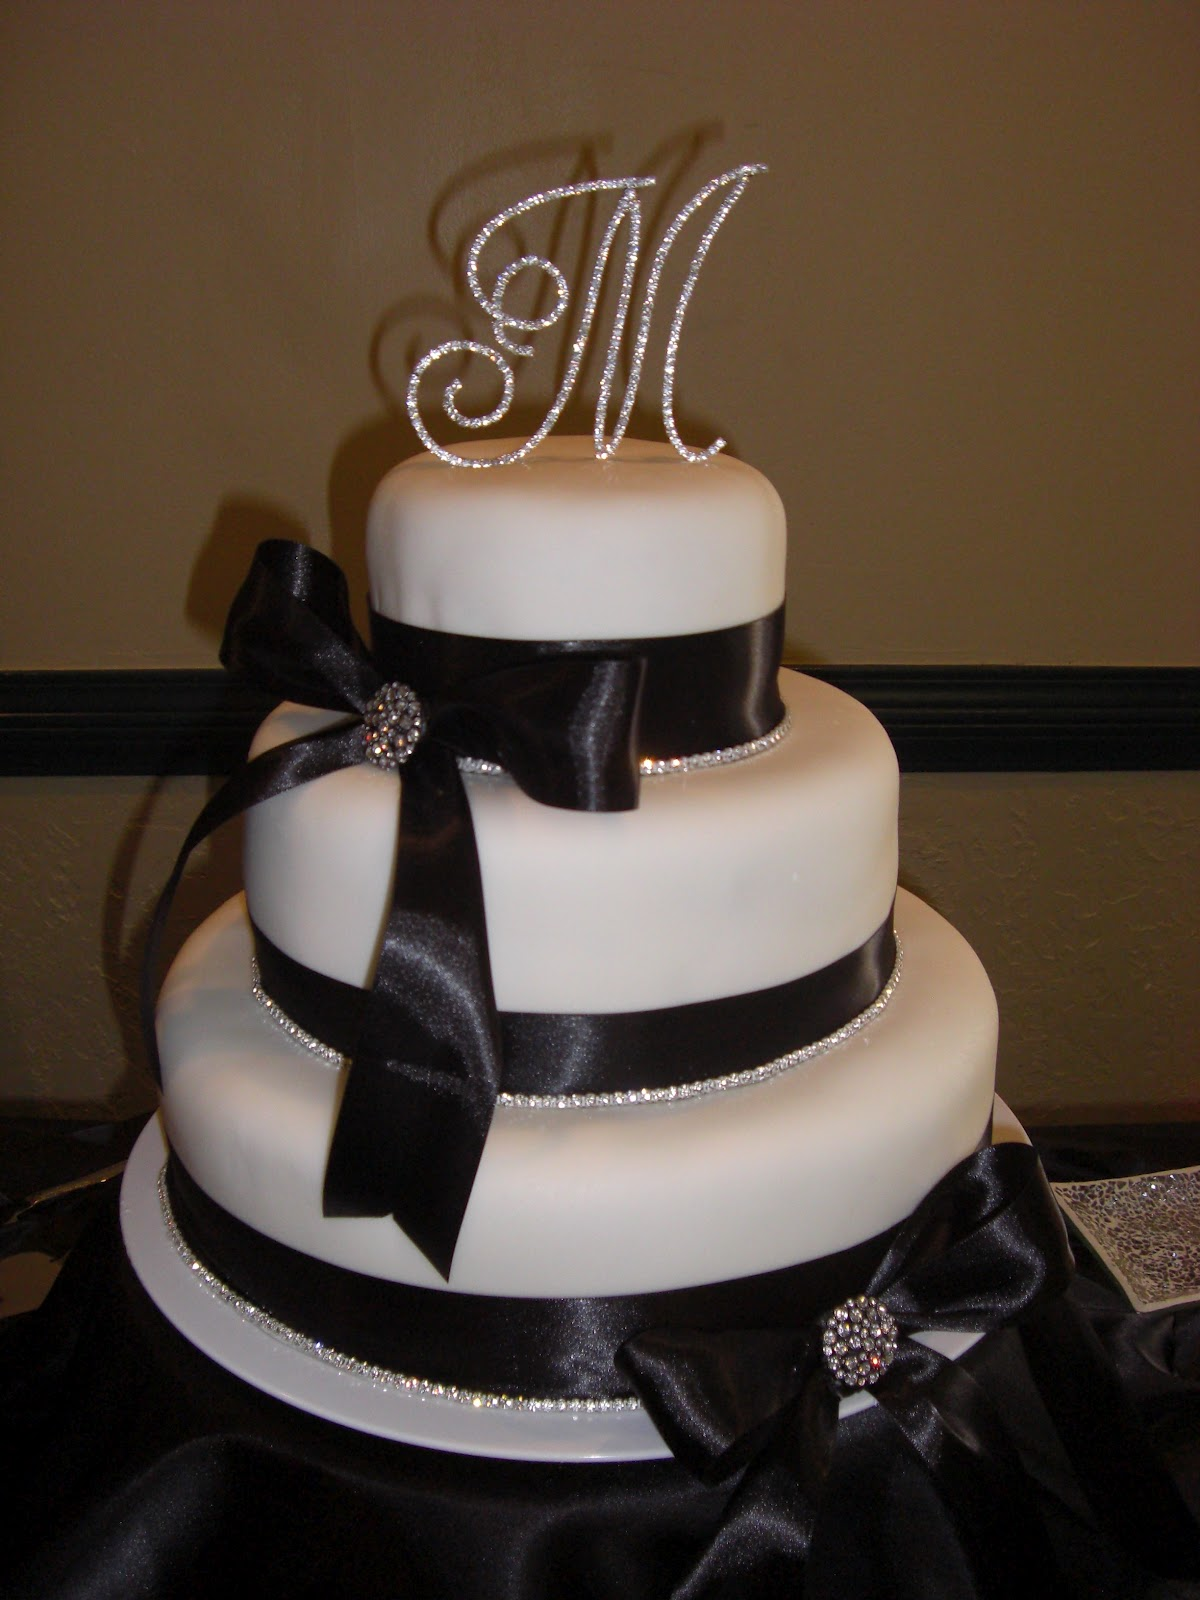 sarah jones cakes wedding cakes. Black Bedroom Furniture Sets. Home Design Ideas